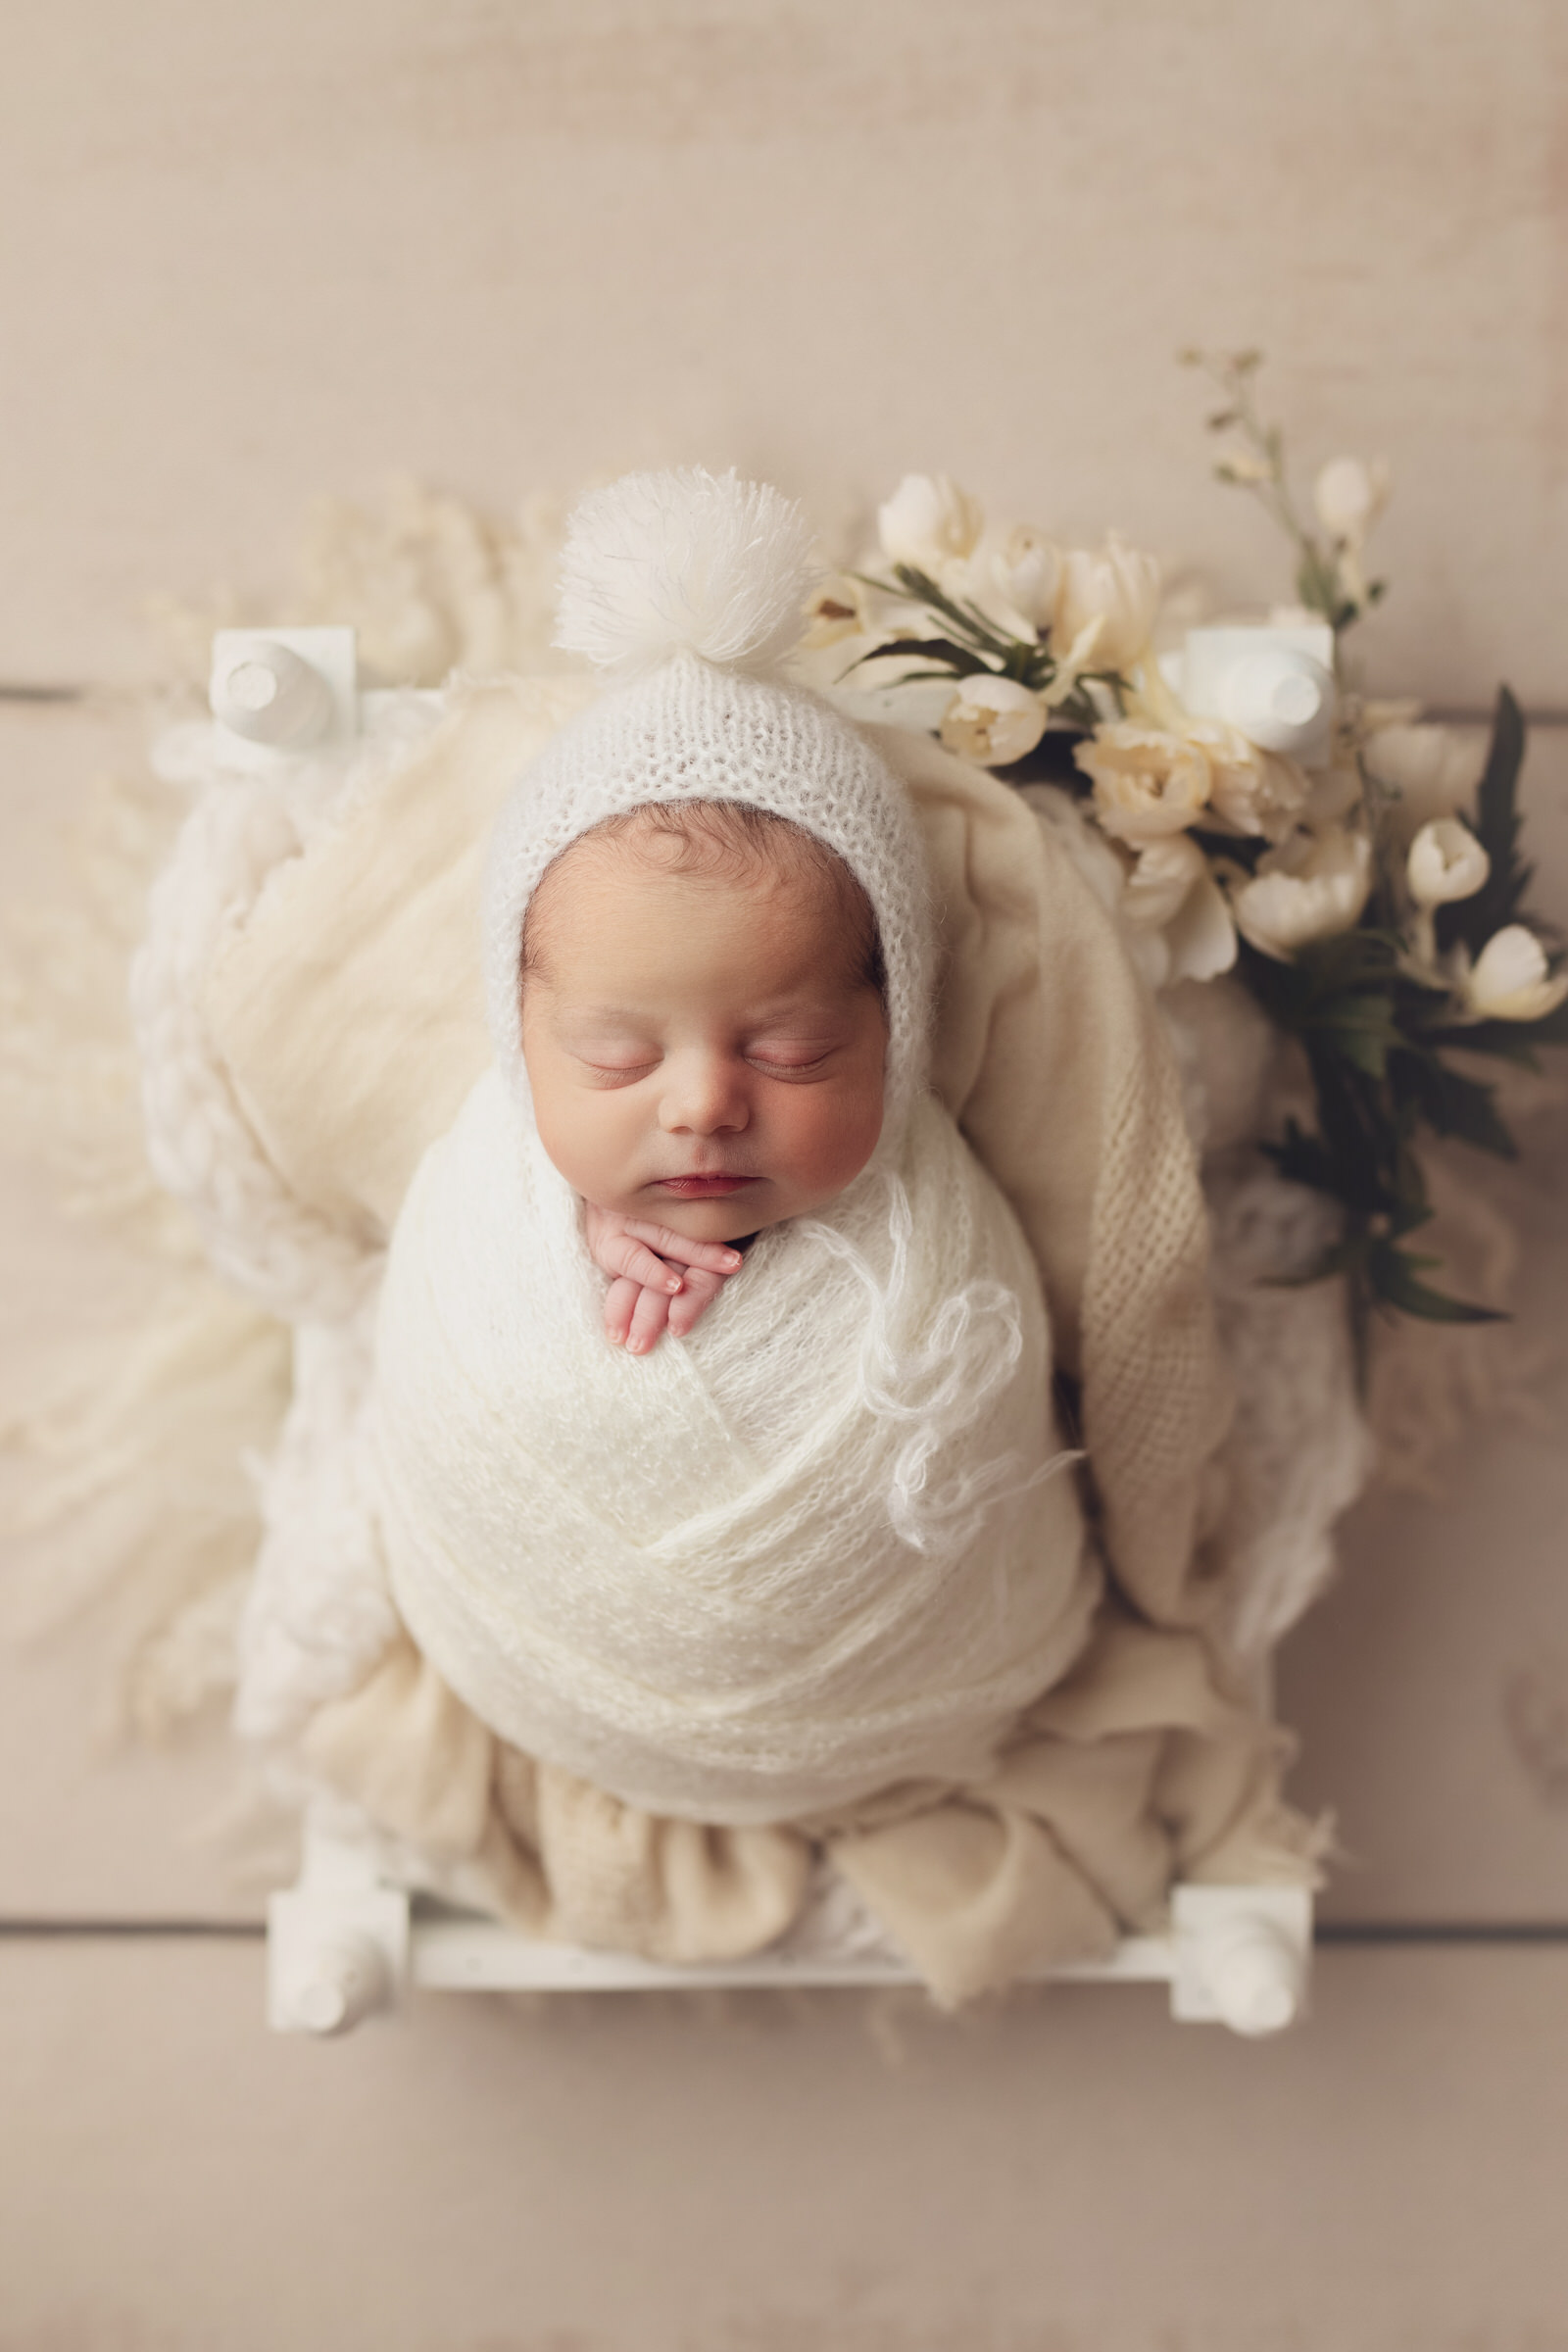 Baby sleeping face up on a white bed with flowers